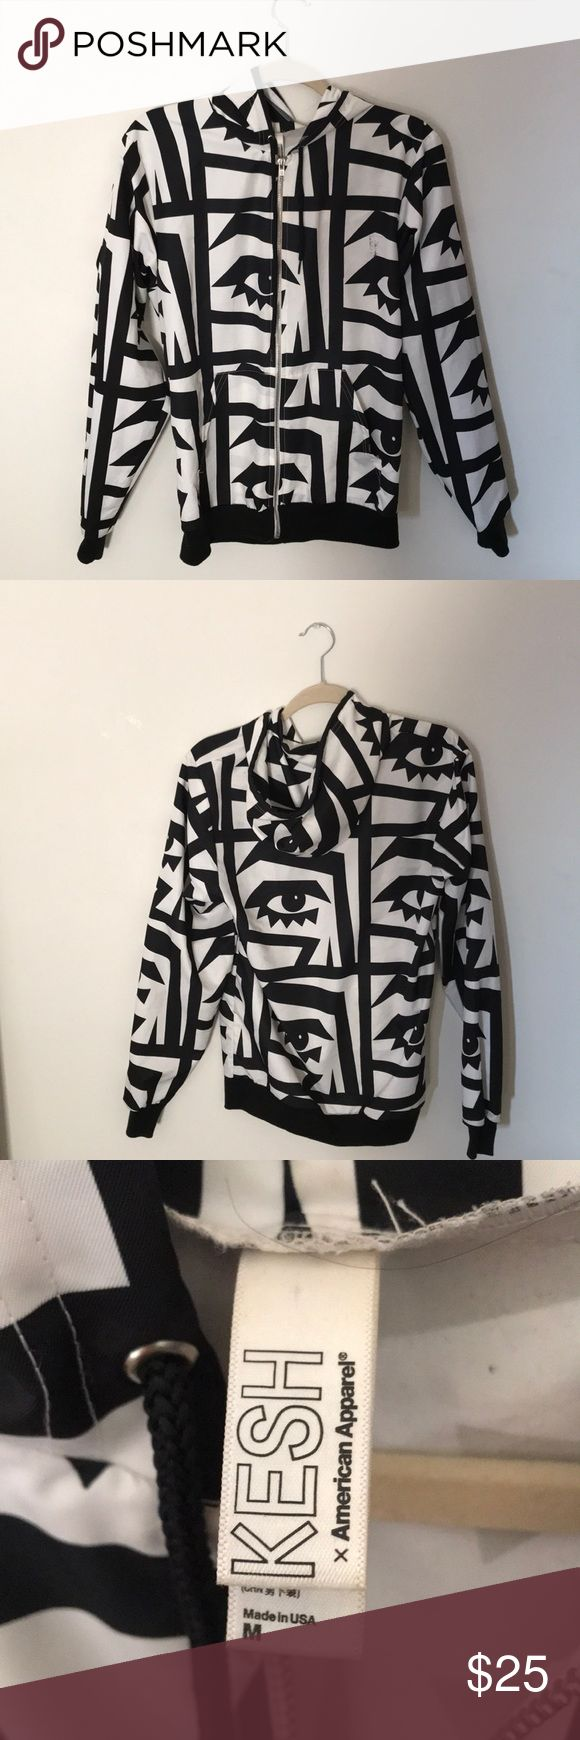 American Apparel zip up wind breaker Black&White eye pattern zip up wind breaker with hood size (M) USA Hardly ever worn but does have have black stain but was there when I purchased the jacket you can see it in the fourth photo. It blends in with the design so you can't really tell American Apparel Jackets & Coats Puffers